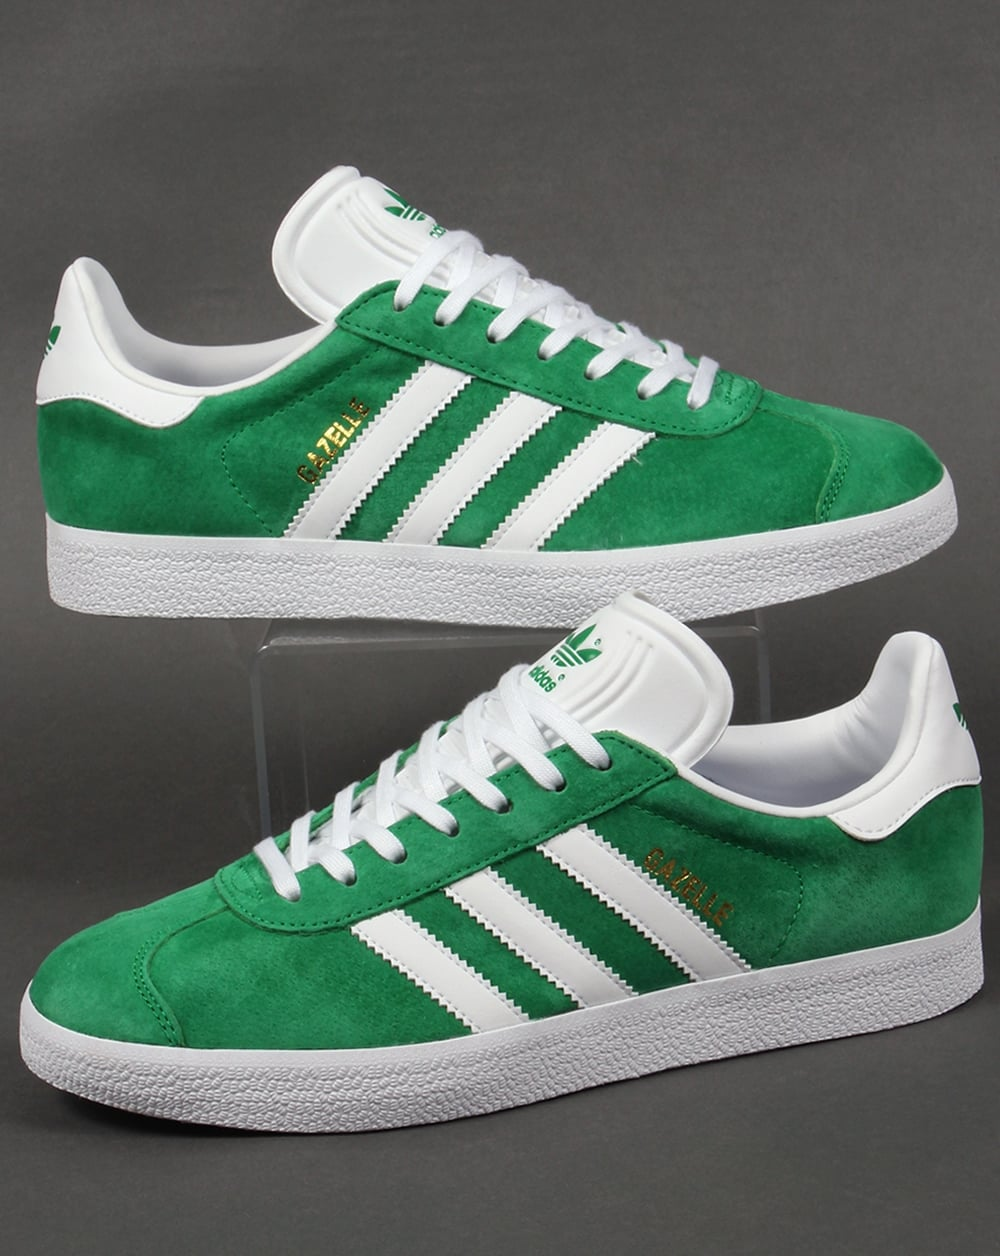 Mens Adidas Green And White Shoes Gazelle